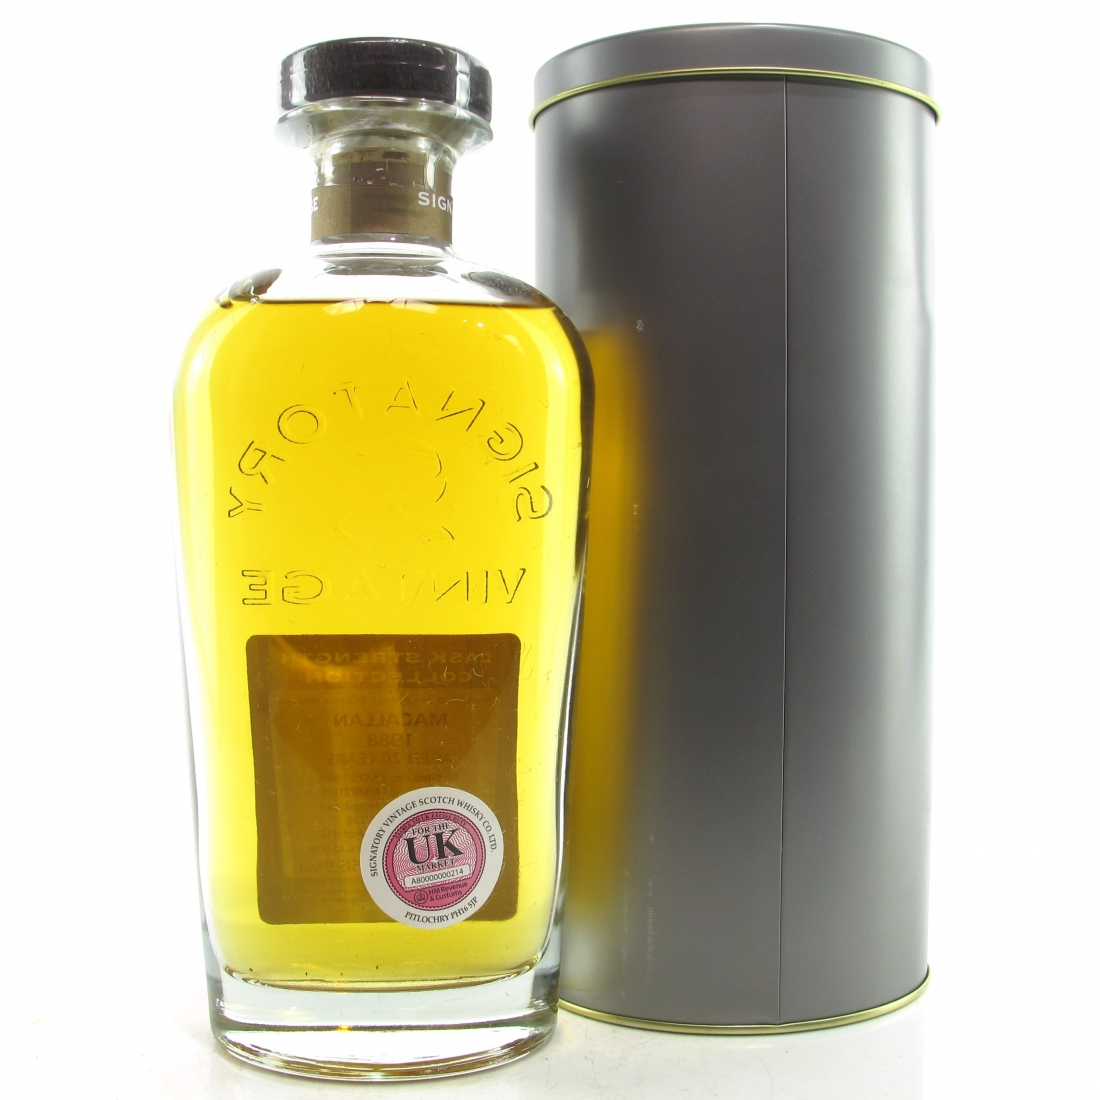 Macallan 1988 Signatory Vintage 20 Year Old Cask Strength